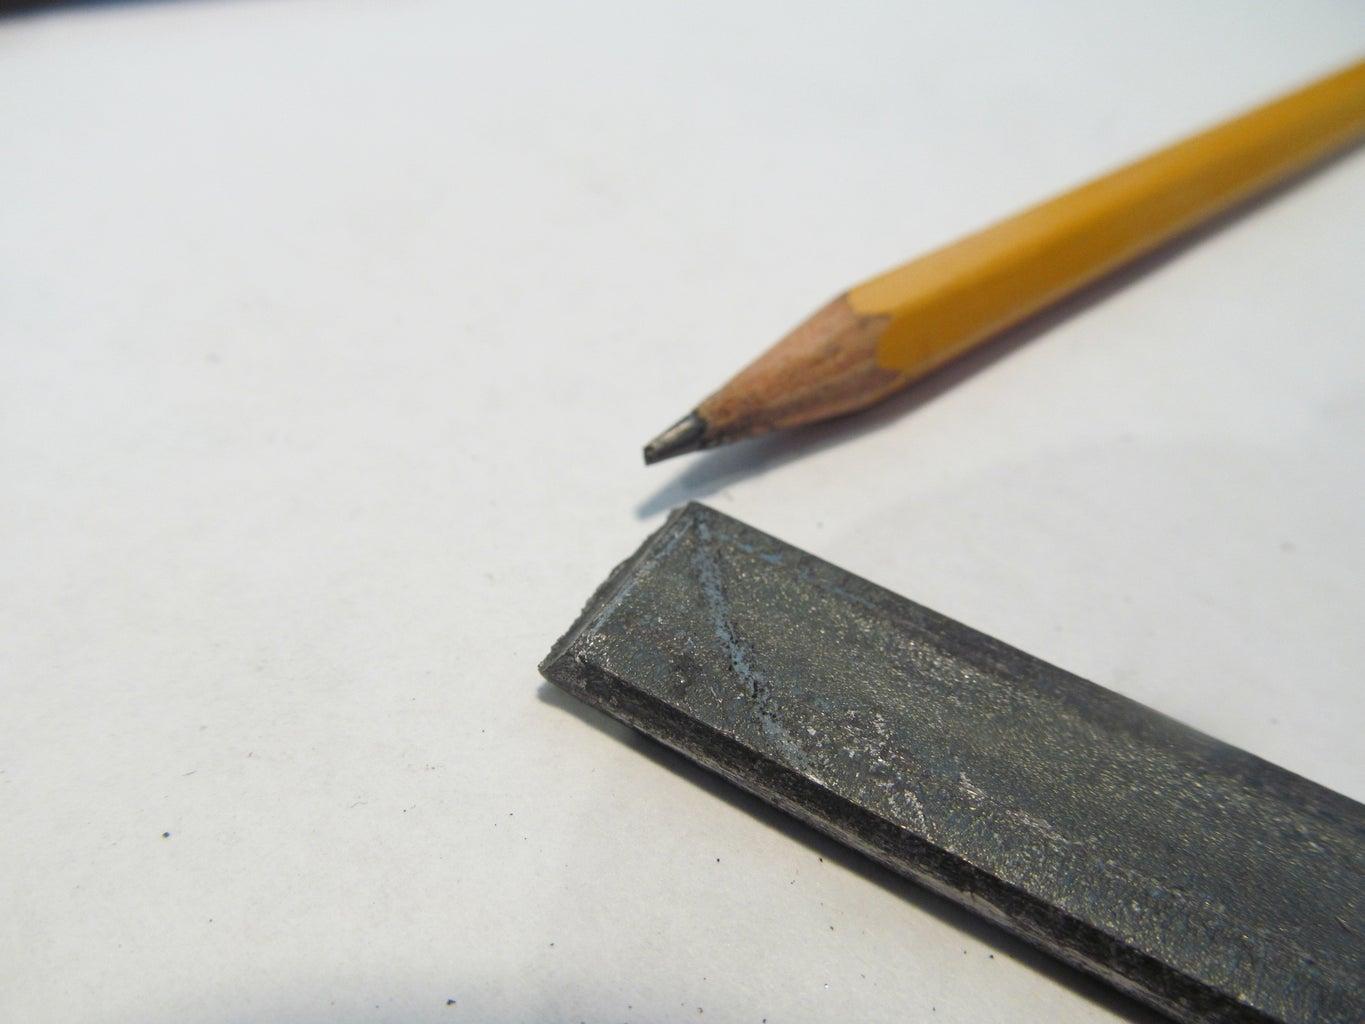 Cutting the Blade Length